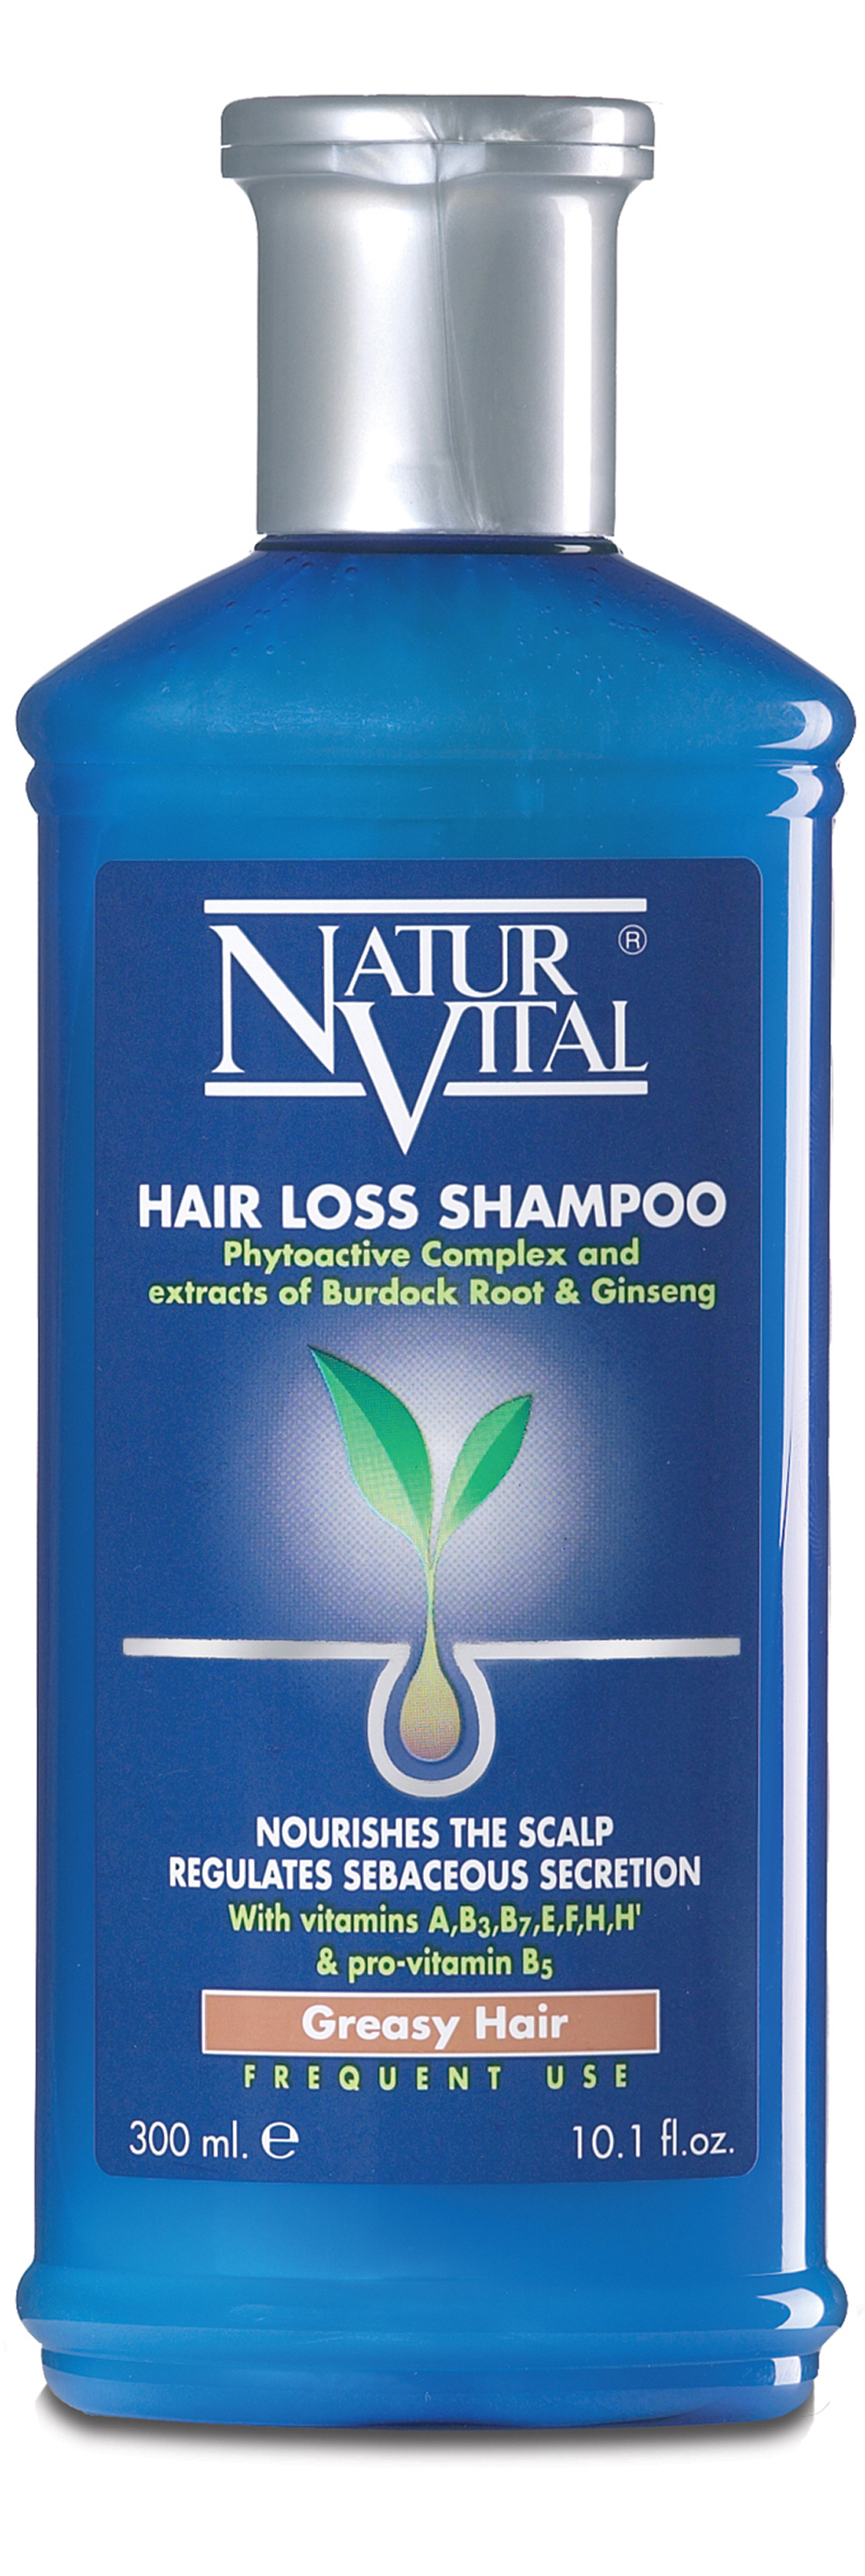 NaturVital hair loss shampoo